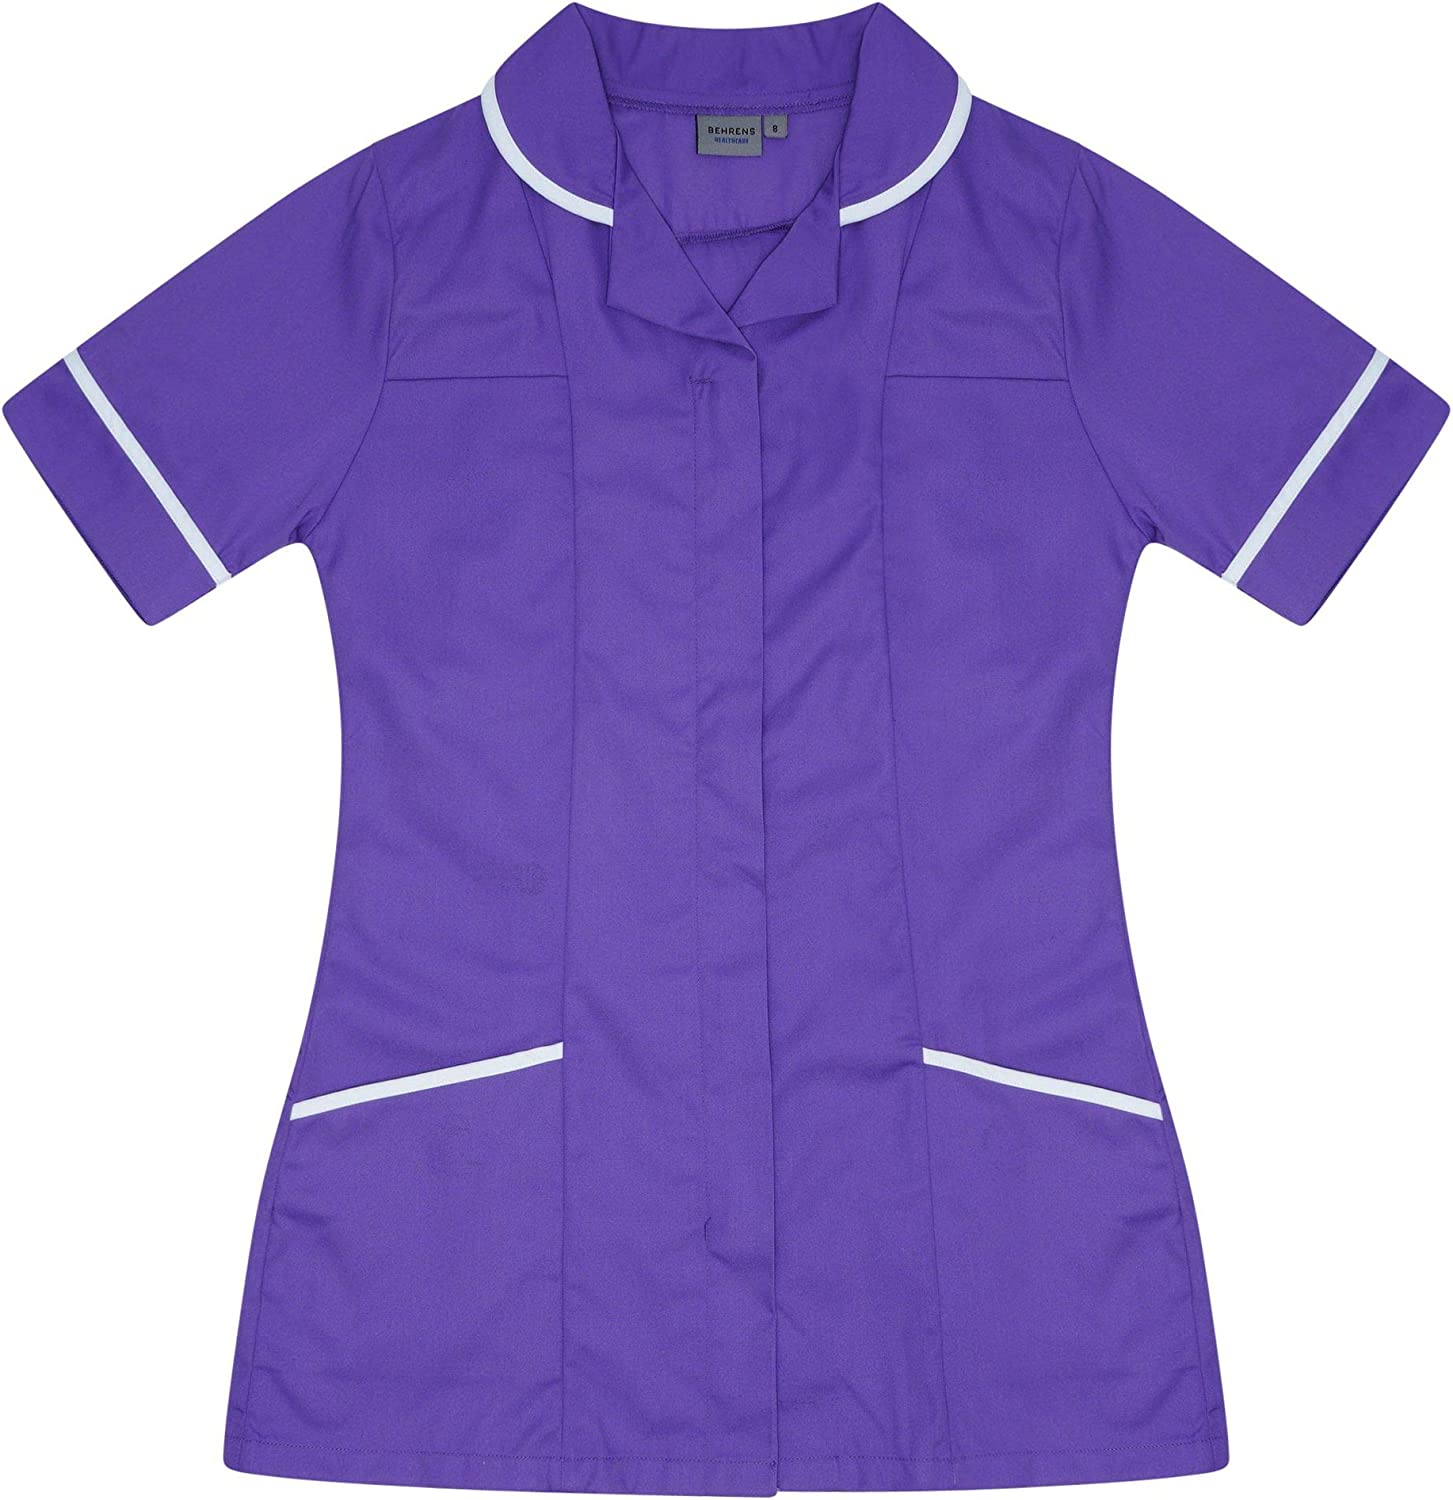 Behrens Womens Healthcare Tunic P S